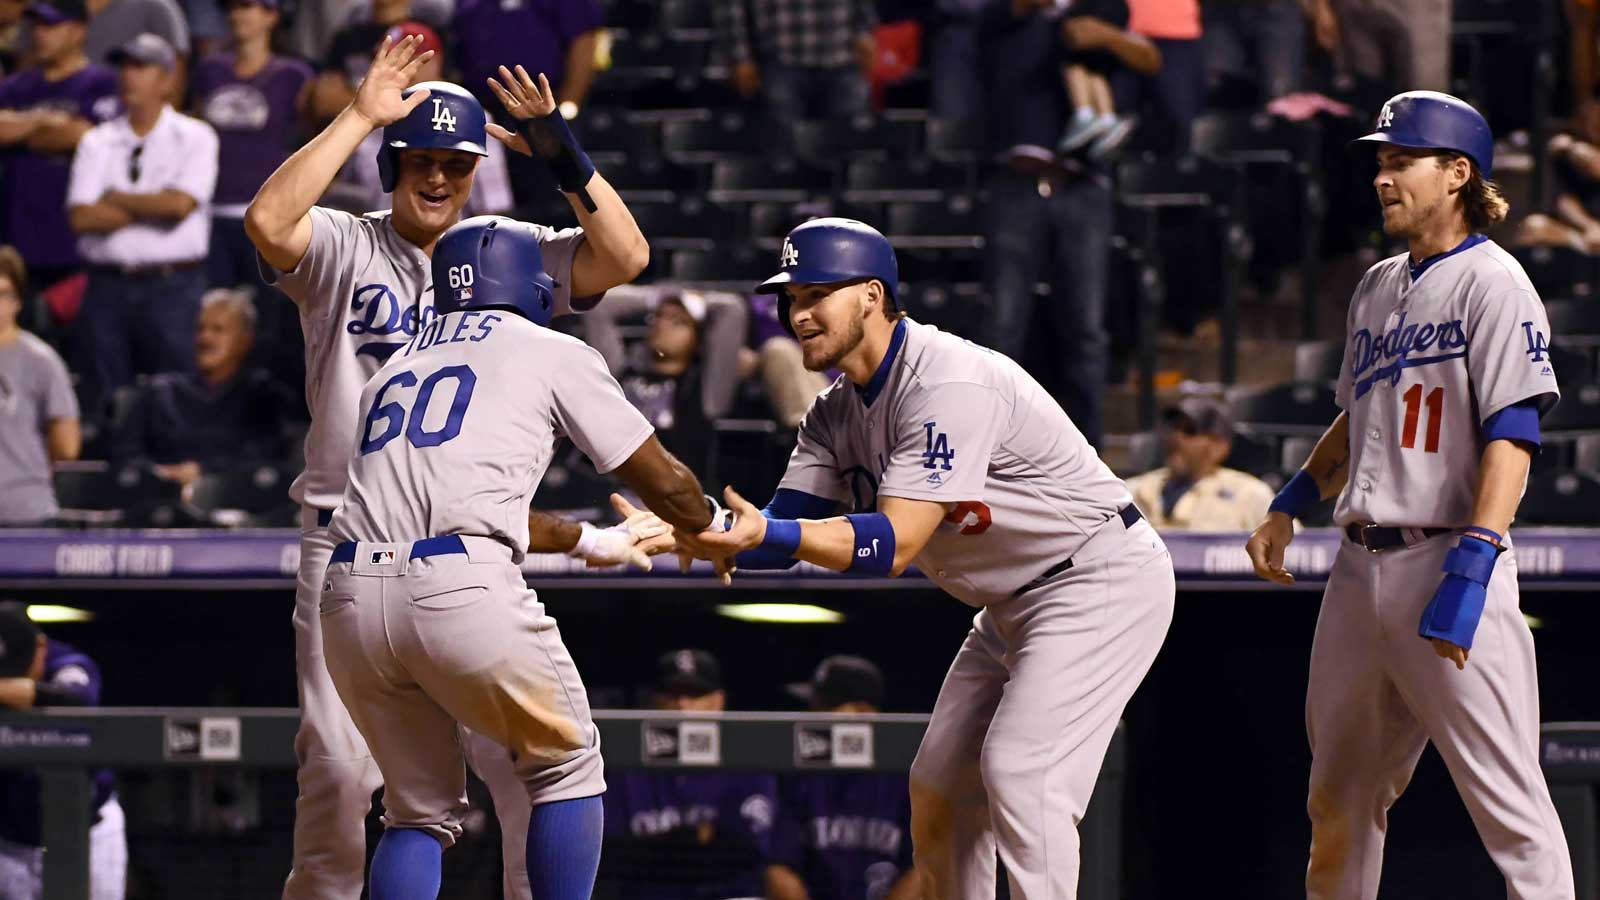 NL West: Dodgers avoid sweep with epic comeback